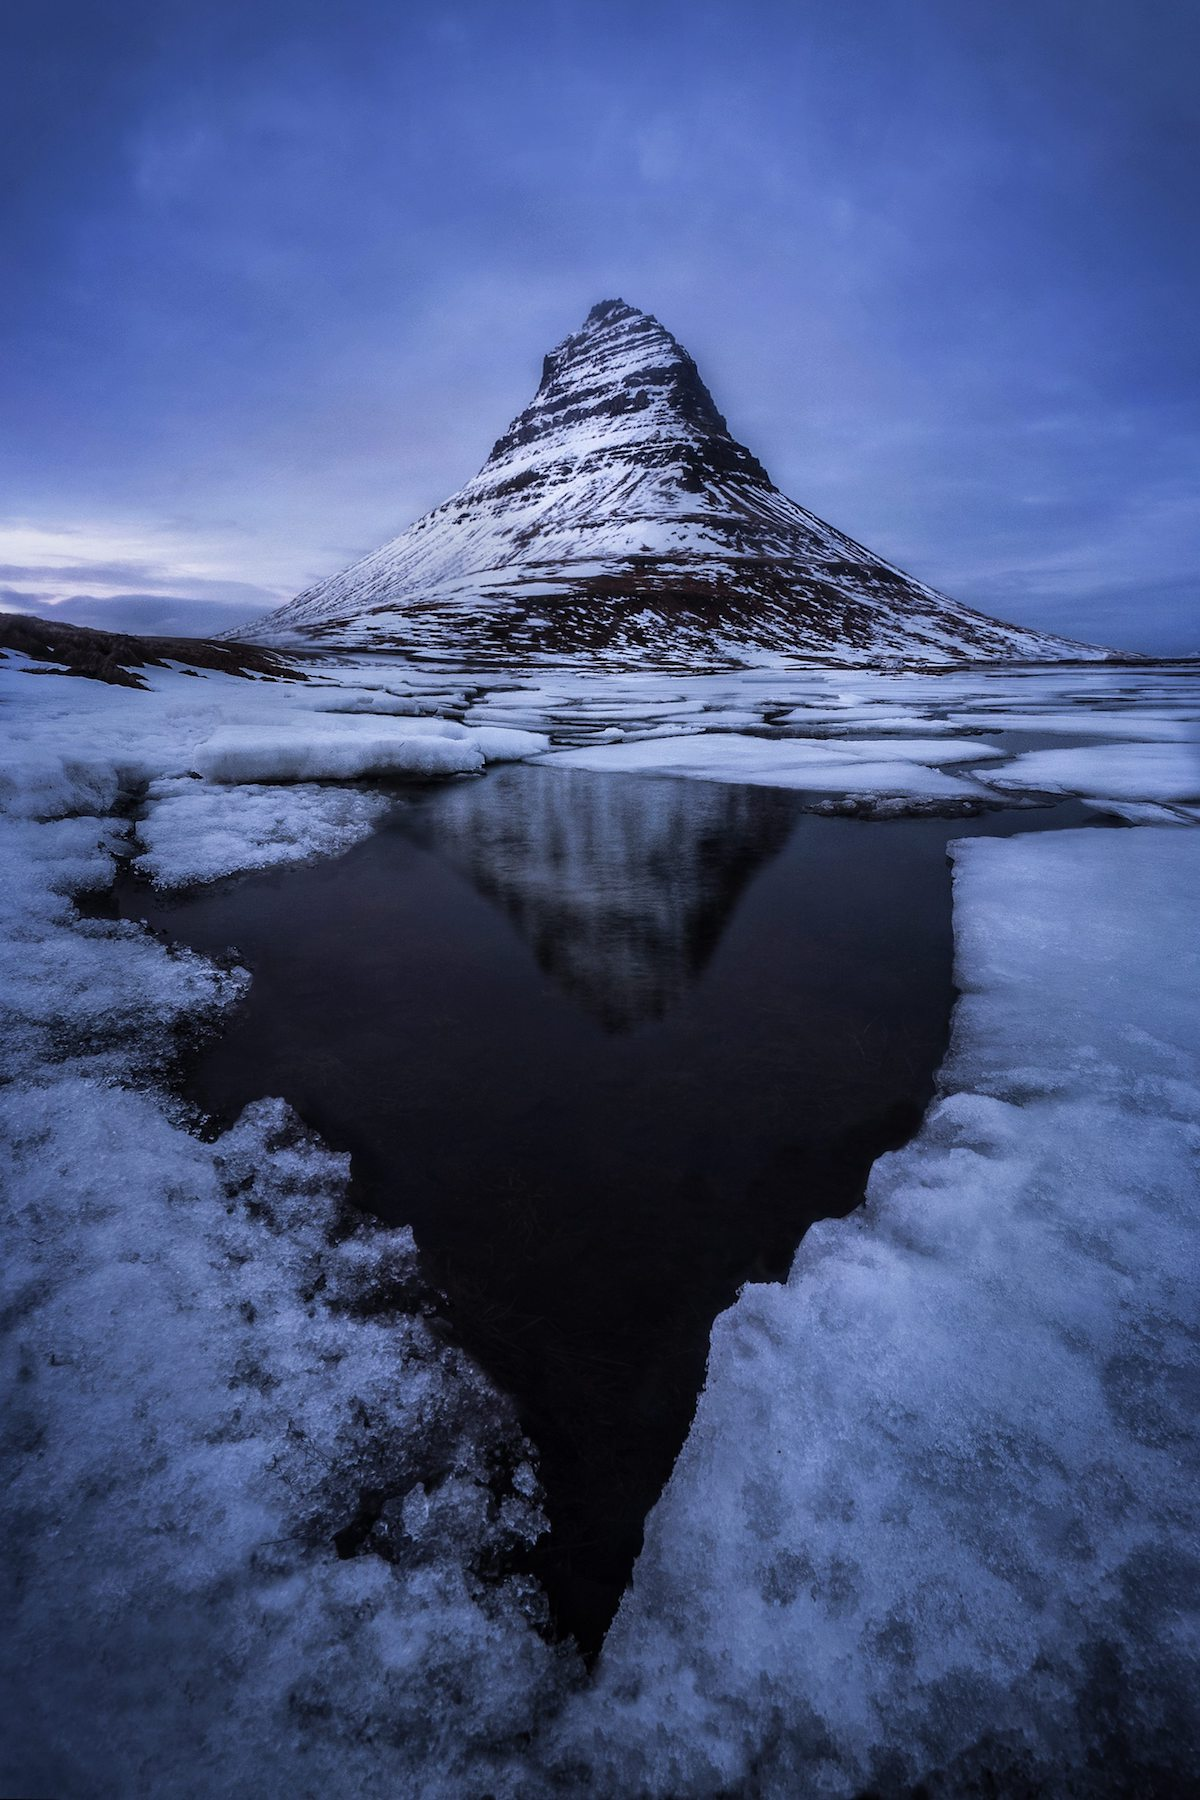 Kirkjufell Mountain, Iceland by Andrew Studer